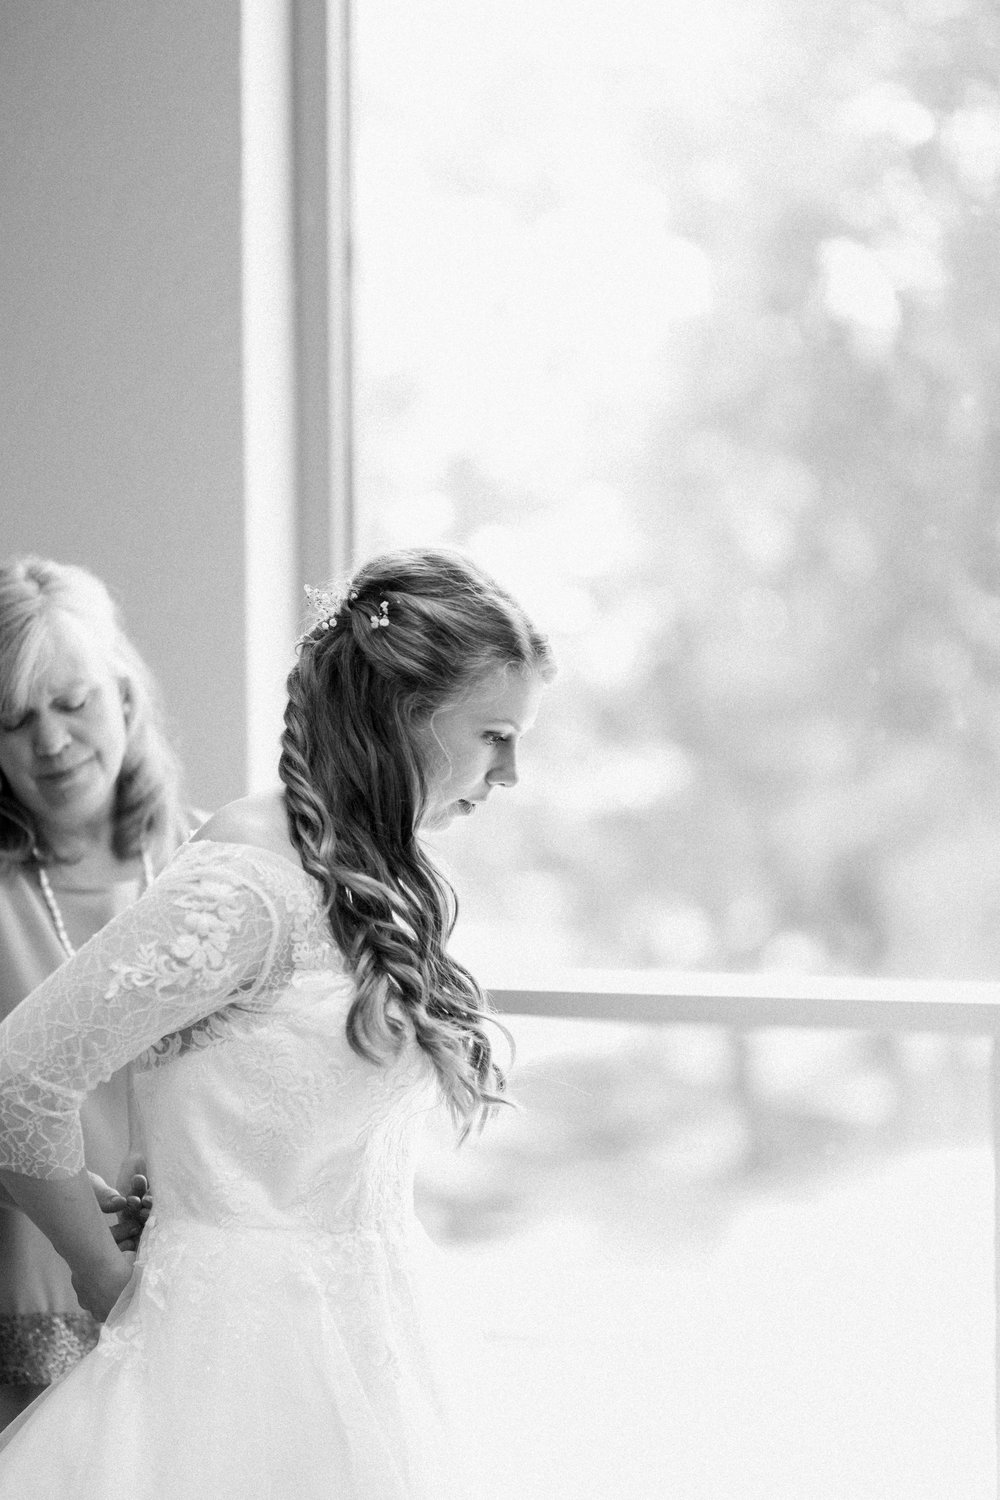 sweettraditionaldesmoineswedding-20.jpg